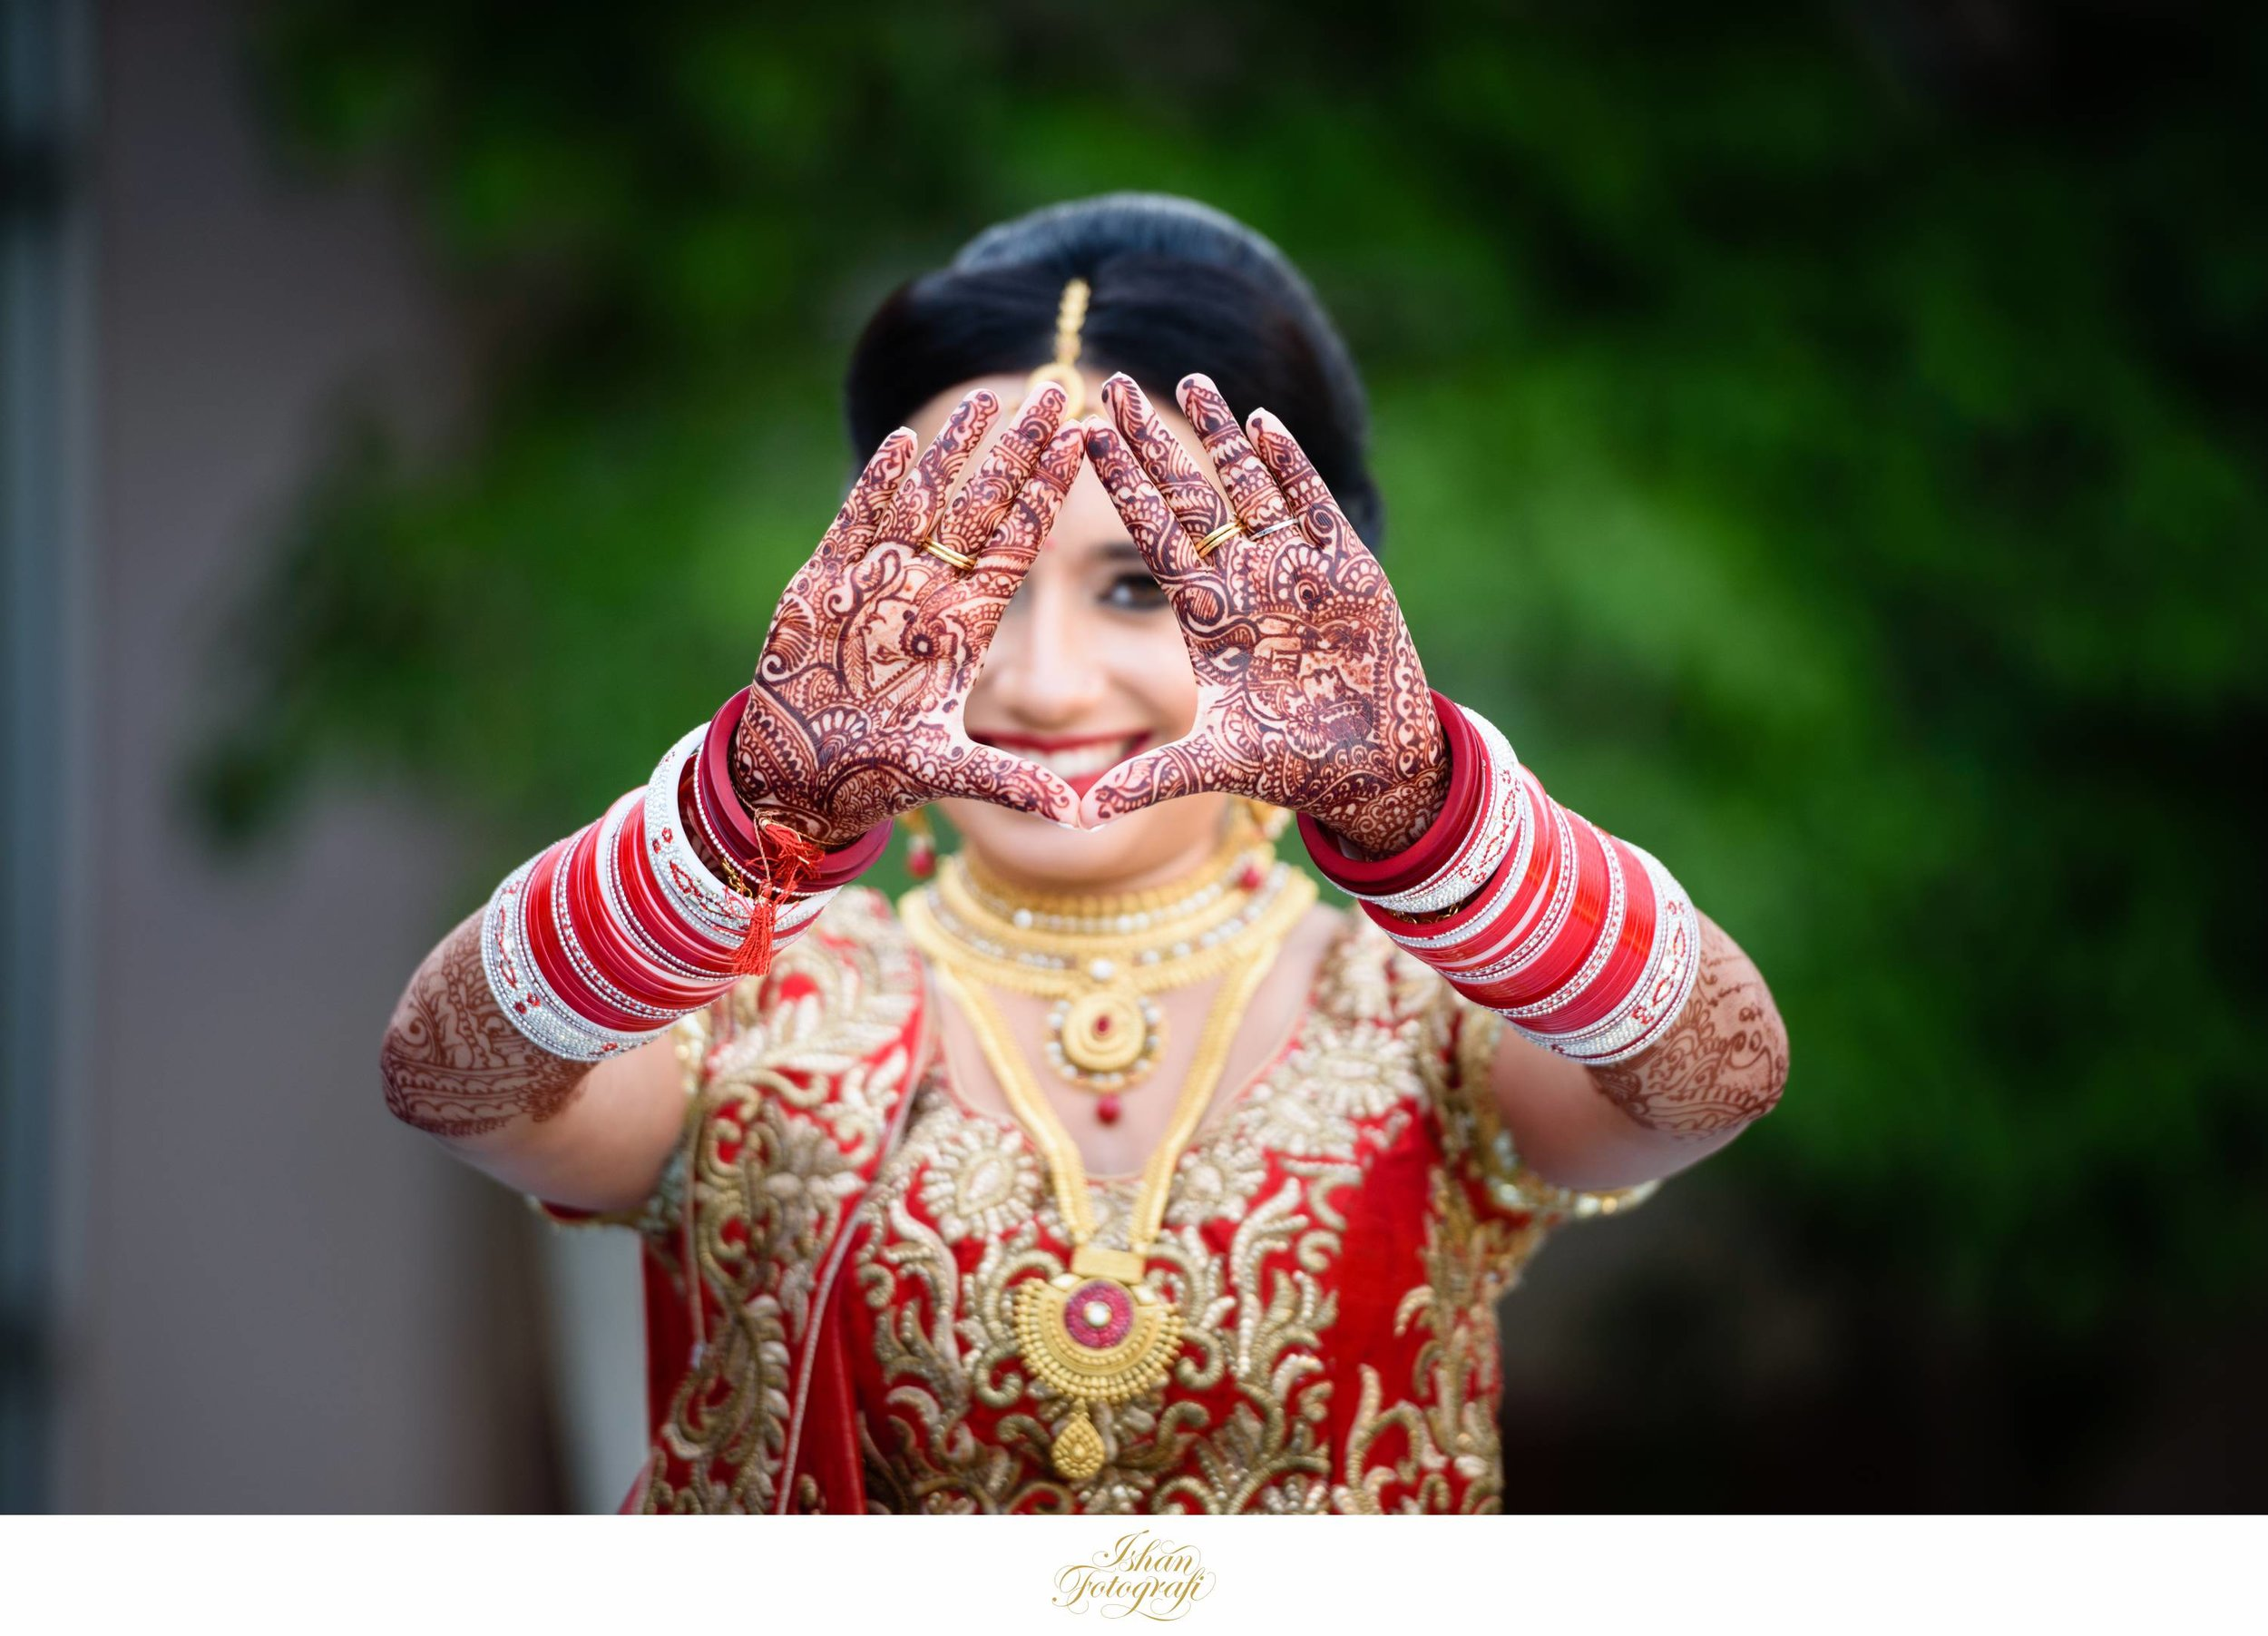 Henna is a integral part of hindu wedding ceremonies. They are typically applied to the bride and sometimes the grooms hand a few days before the wedding ceremony.